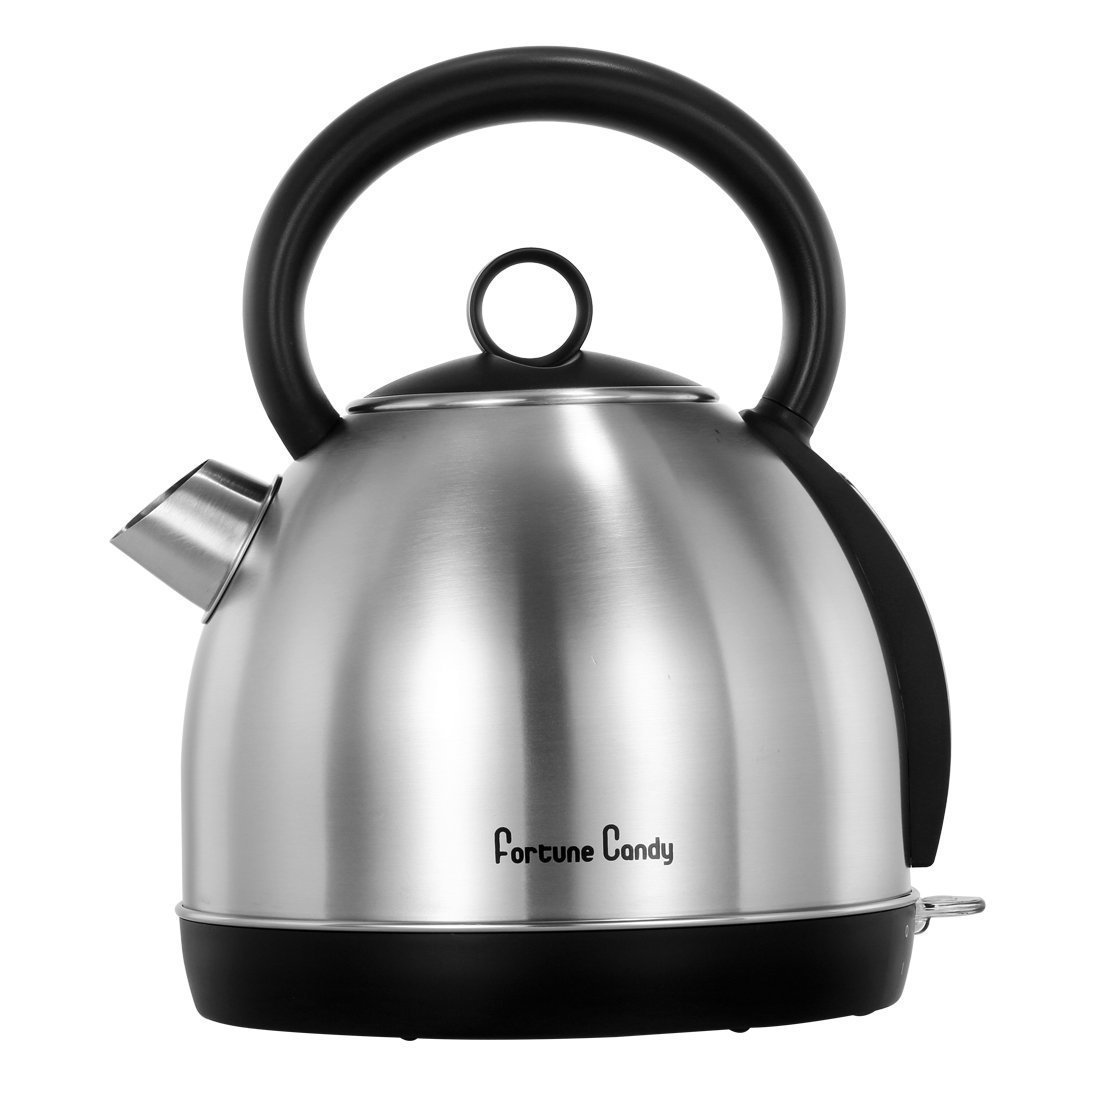 MLO E-CO Stainless Steel Electric Kettle Tea Pot (BPA Free) - Fast Boiling Water Kettle with Visible Indicator Window, 1500W and 1.7L (Round)